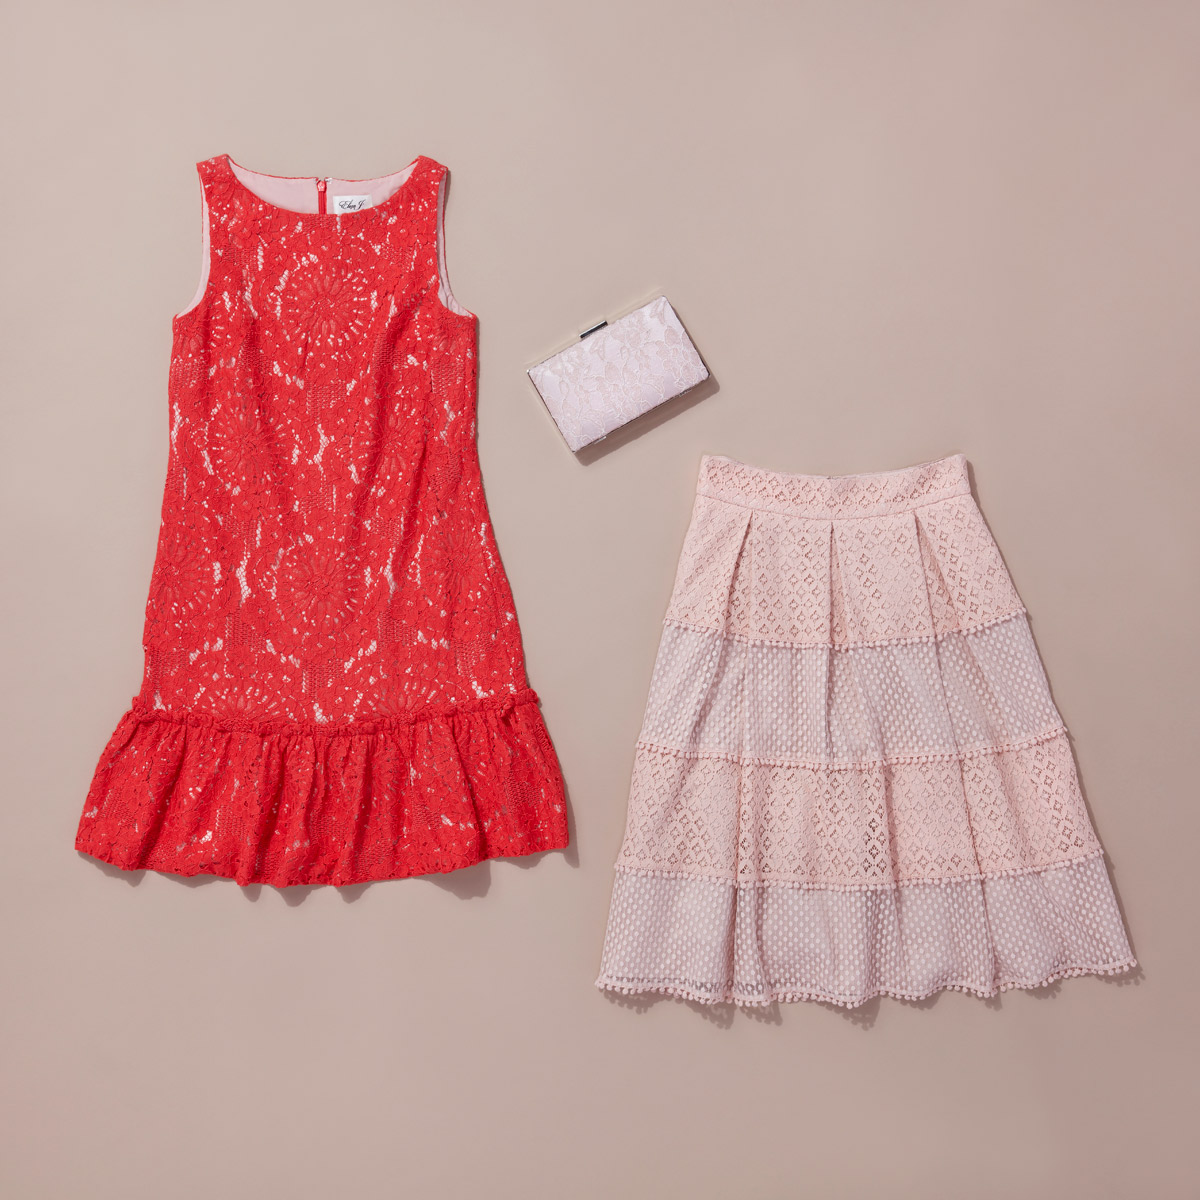 Red lace sleeveless dress, pink lace skirt and a light pink clutch adorned with lace laid flat on a taupe colored background.